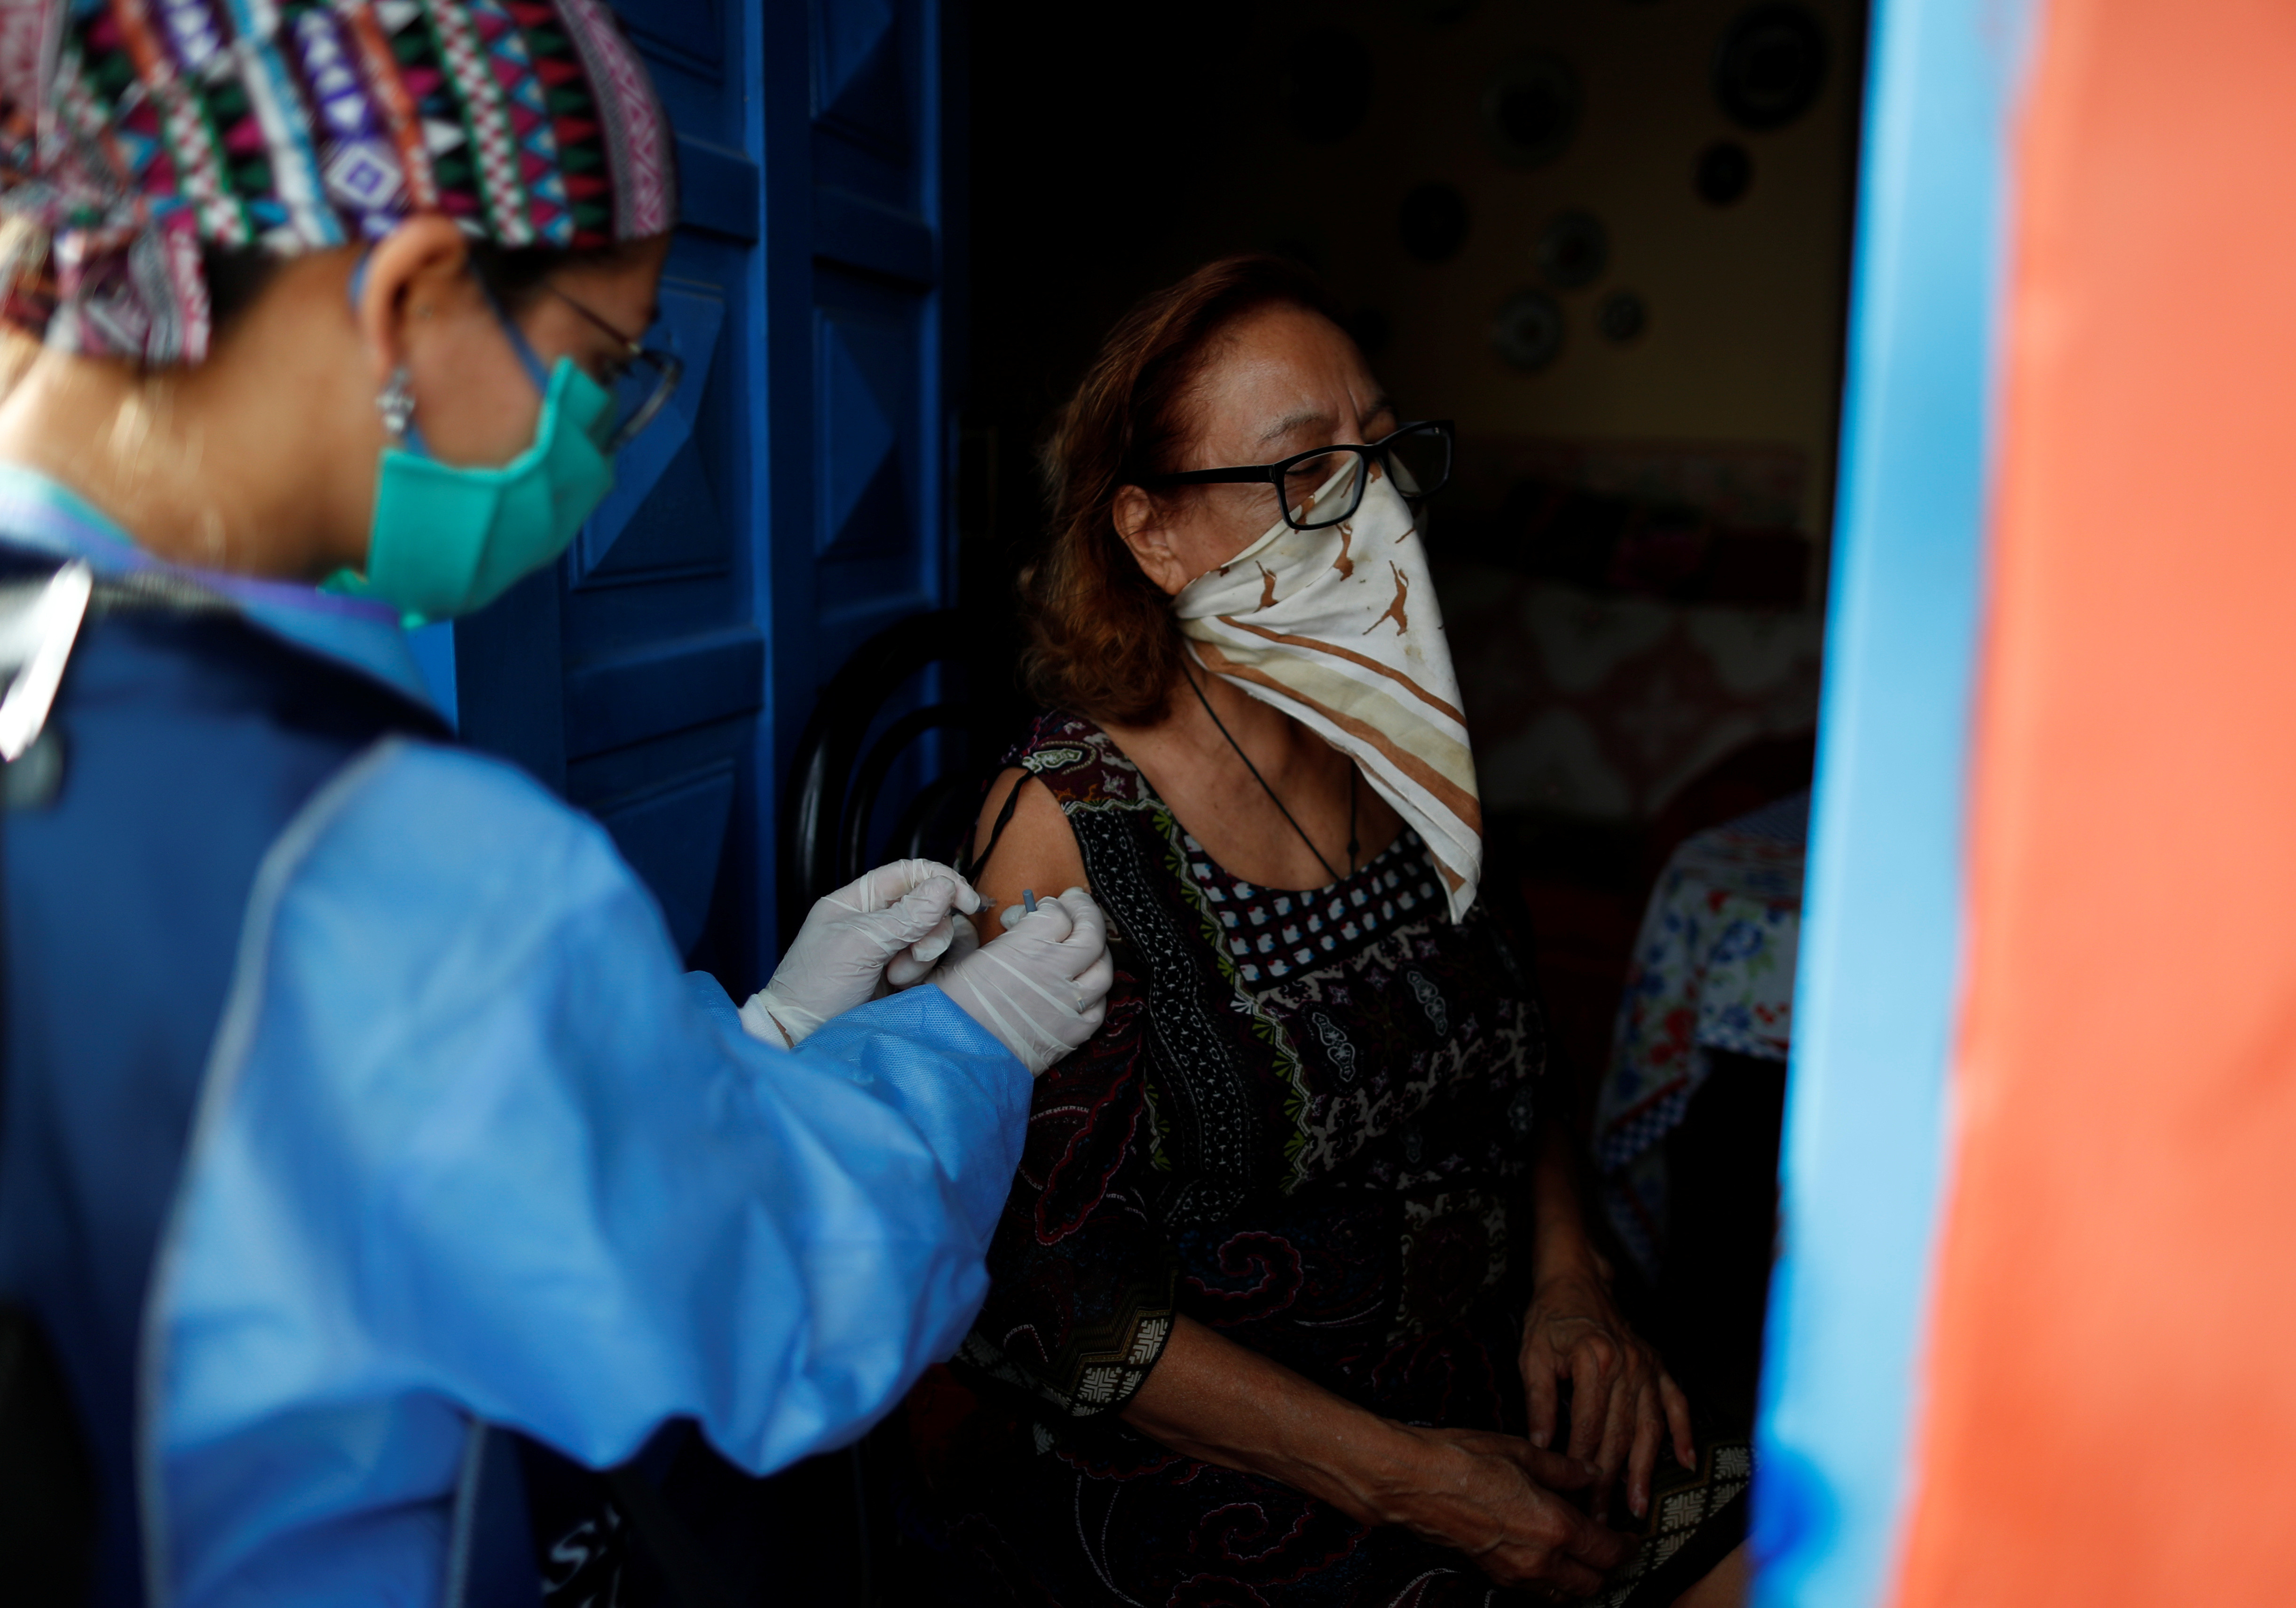 A healthcare worker vaccinates a woman as part of the start of the seasonal flu vaccination campaign as a preventive measure due to the outbreak of coronavirus disease (COVID-19), in Beccar, on the outskirts of Buenos Aires, Argentina June 17, 2020. Picture taken June 17, 2020. REUTERS/Agustin Marcarian - RC2UGH9D3XNT